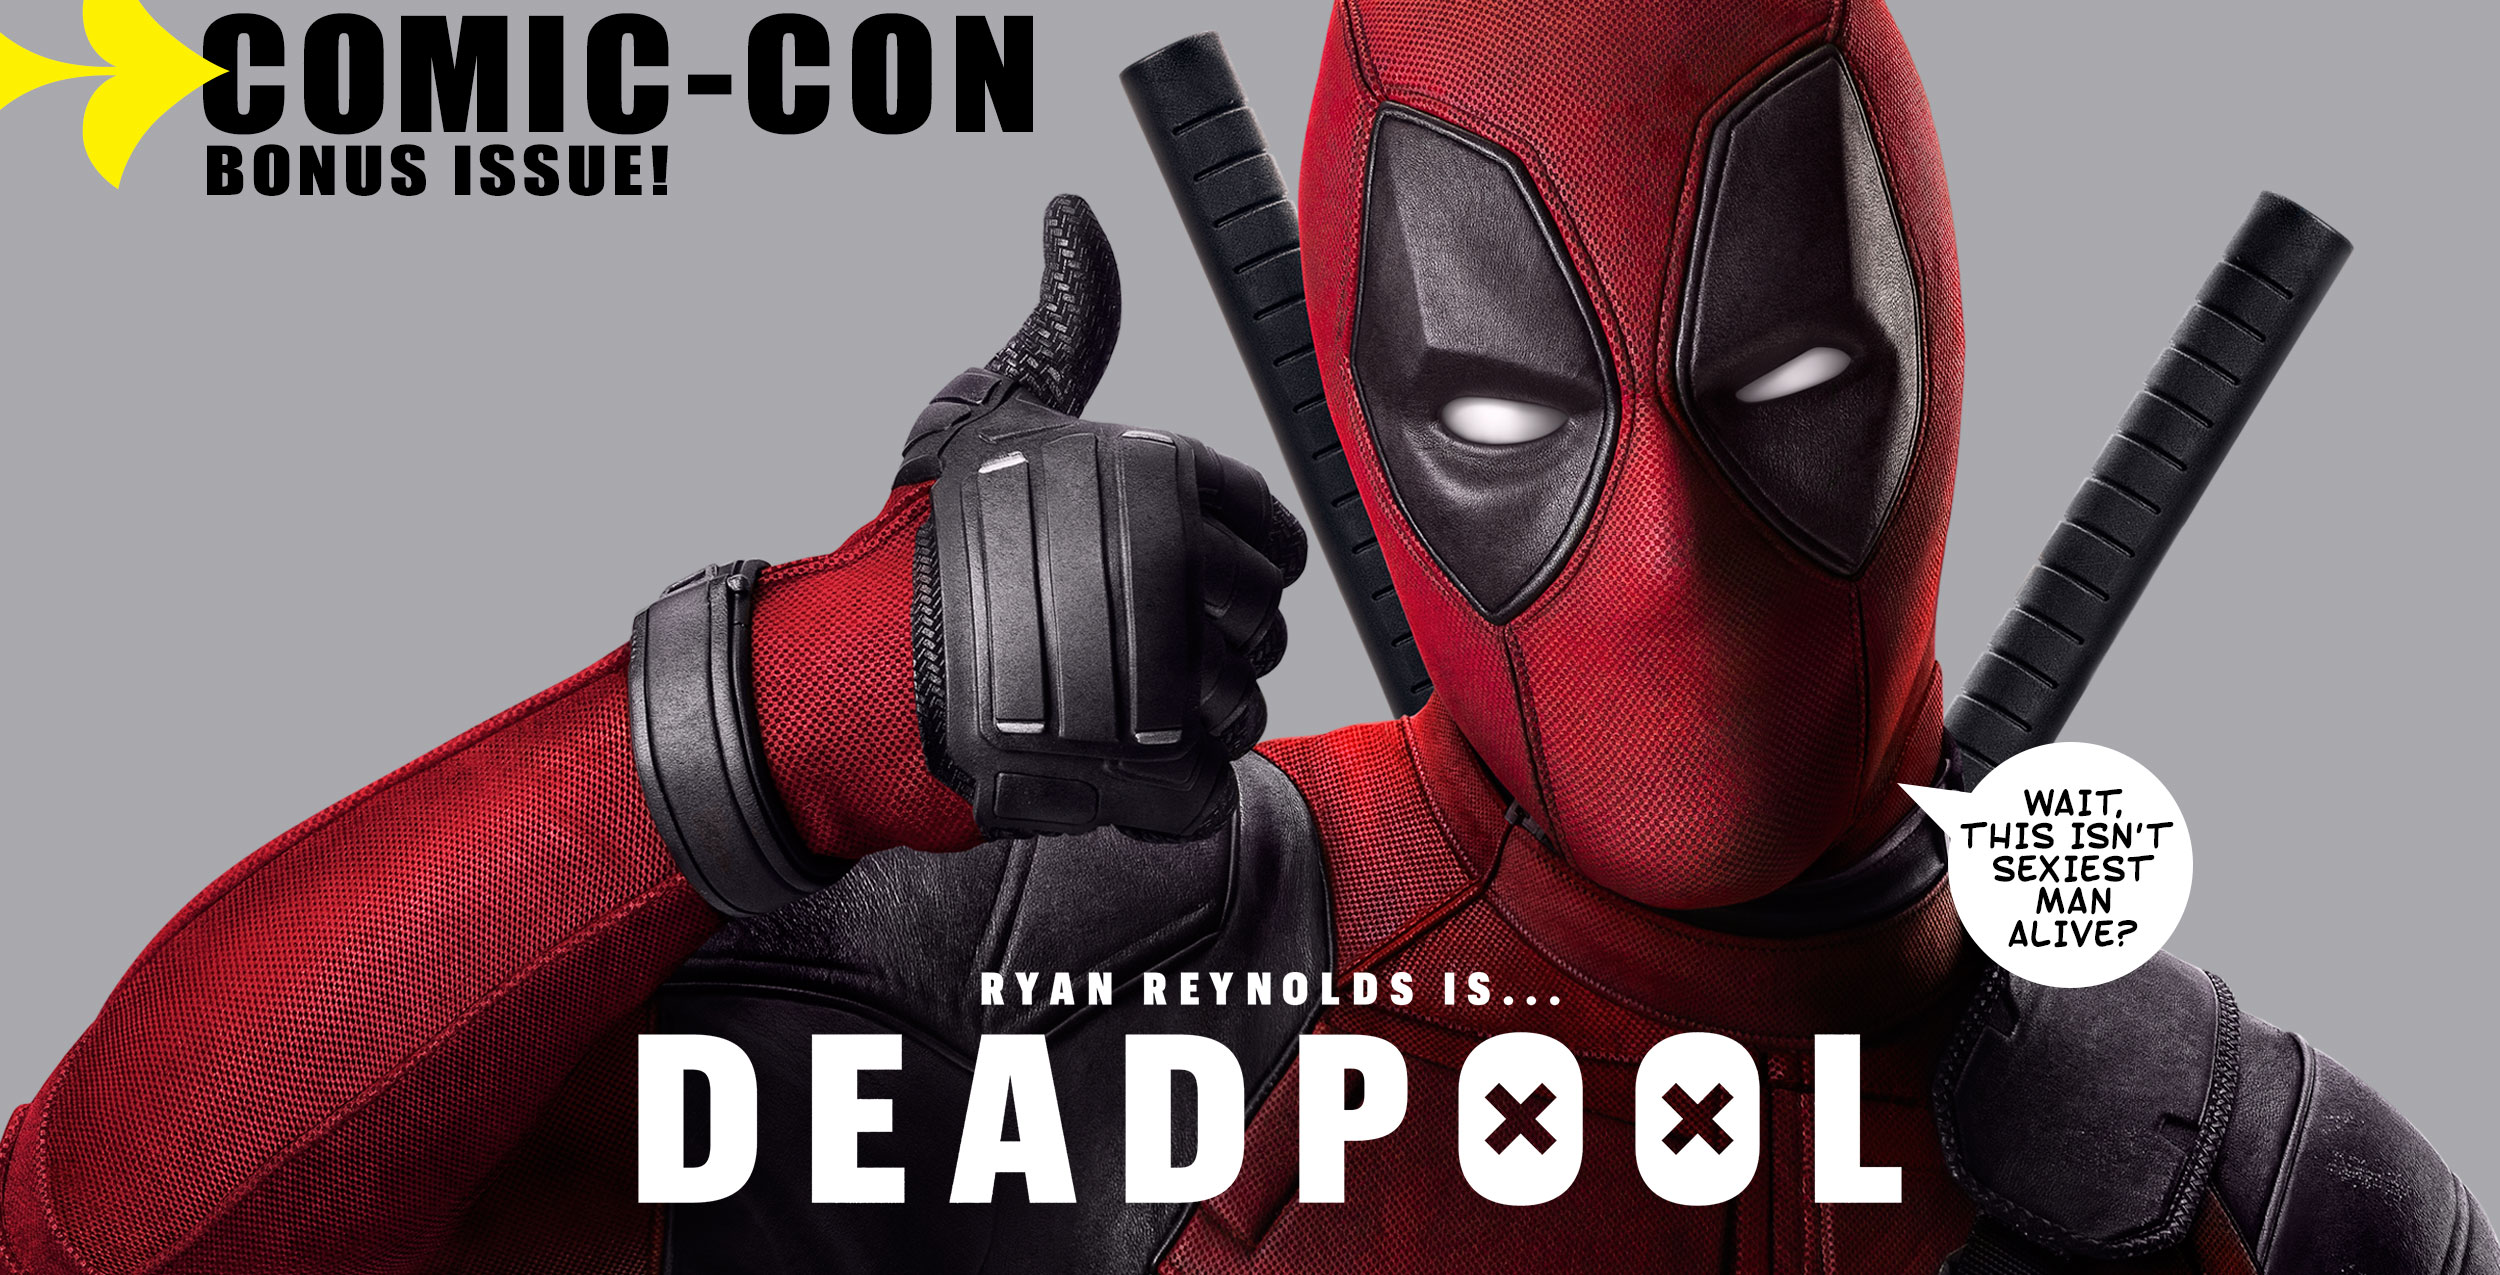 Deadpool | EW Comic - Con Magazine Cover